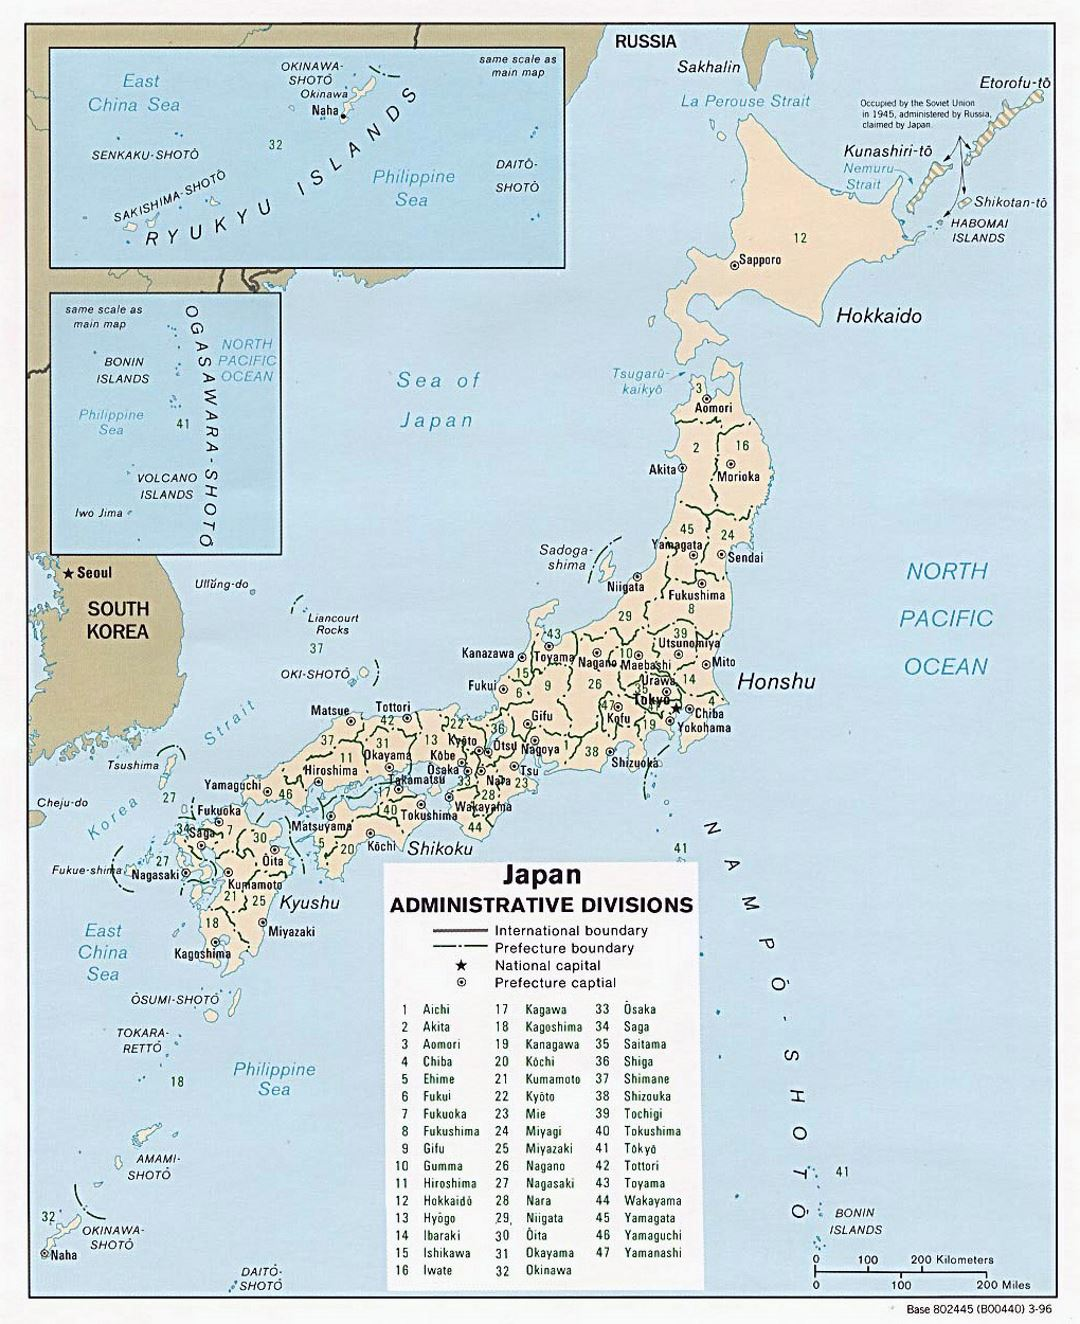 Detailed administrative divisions map of Japan - 1996